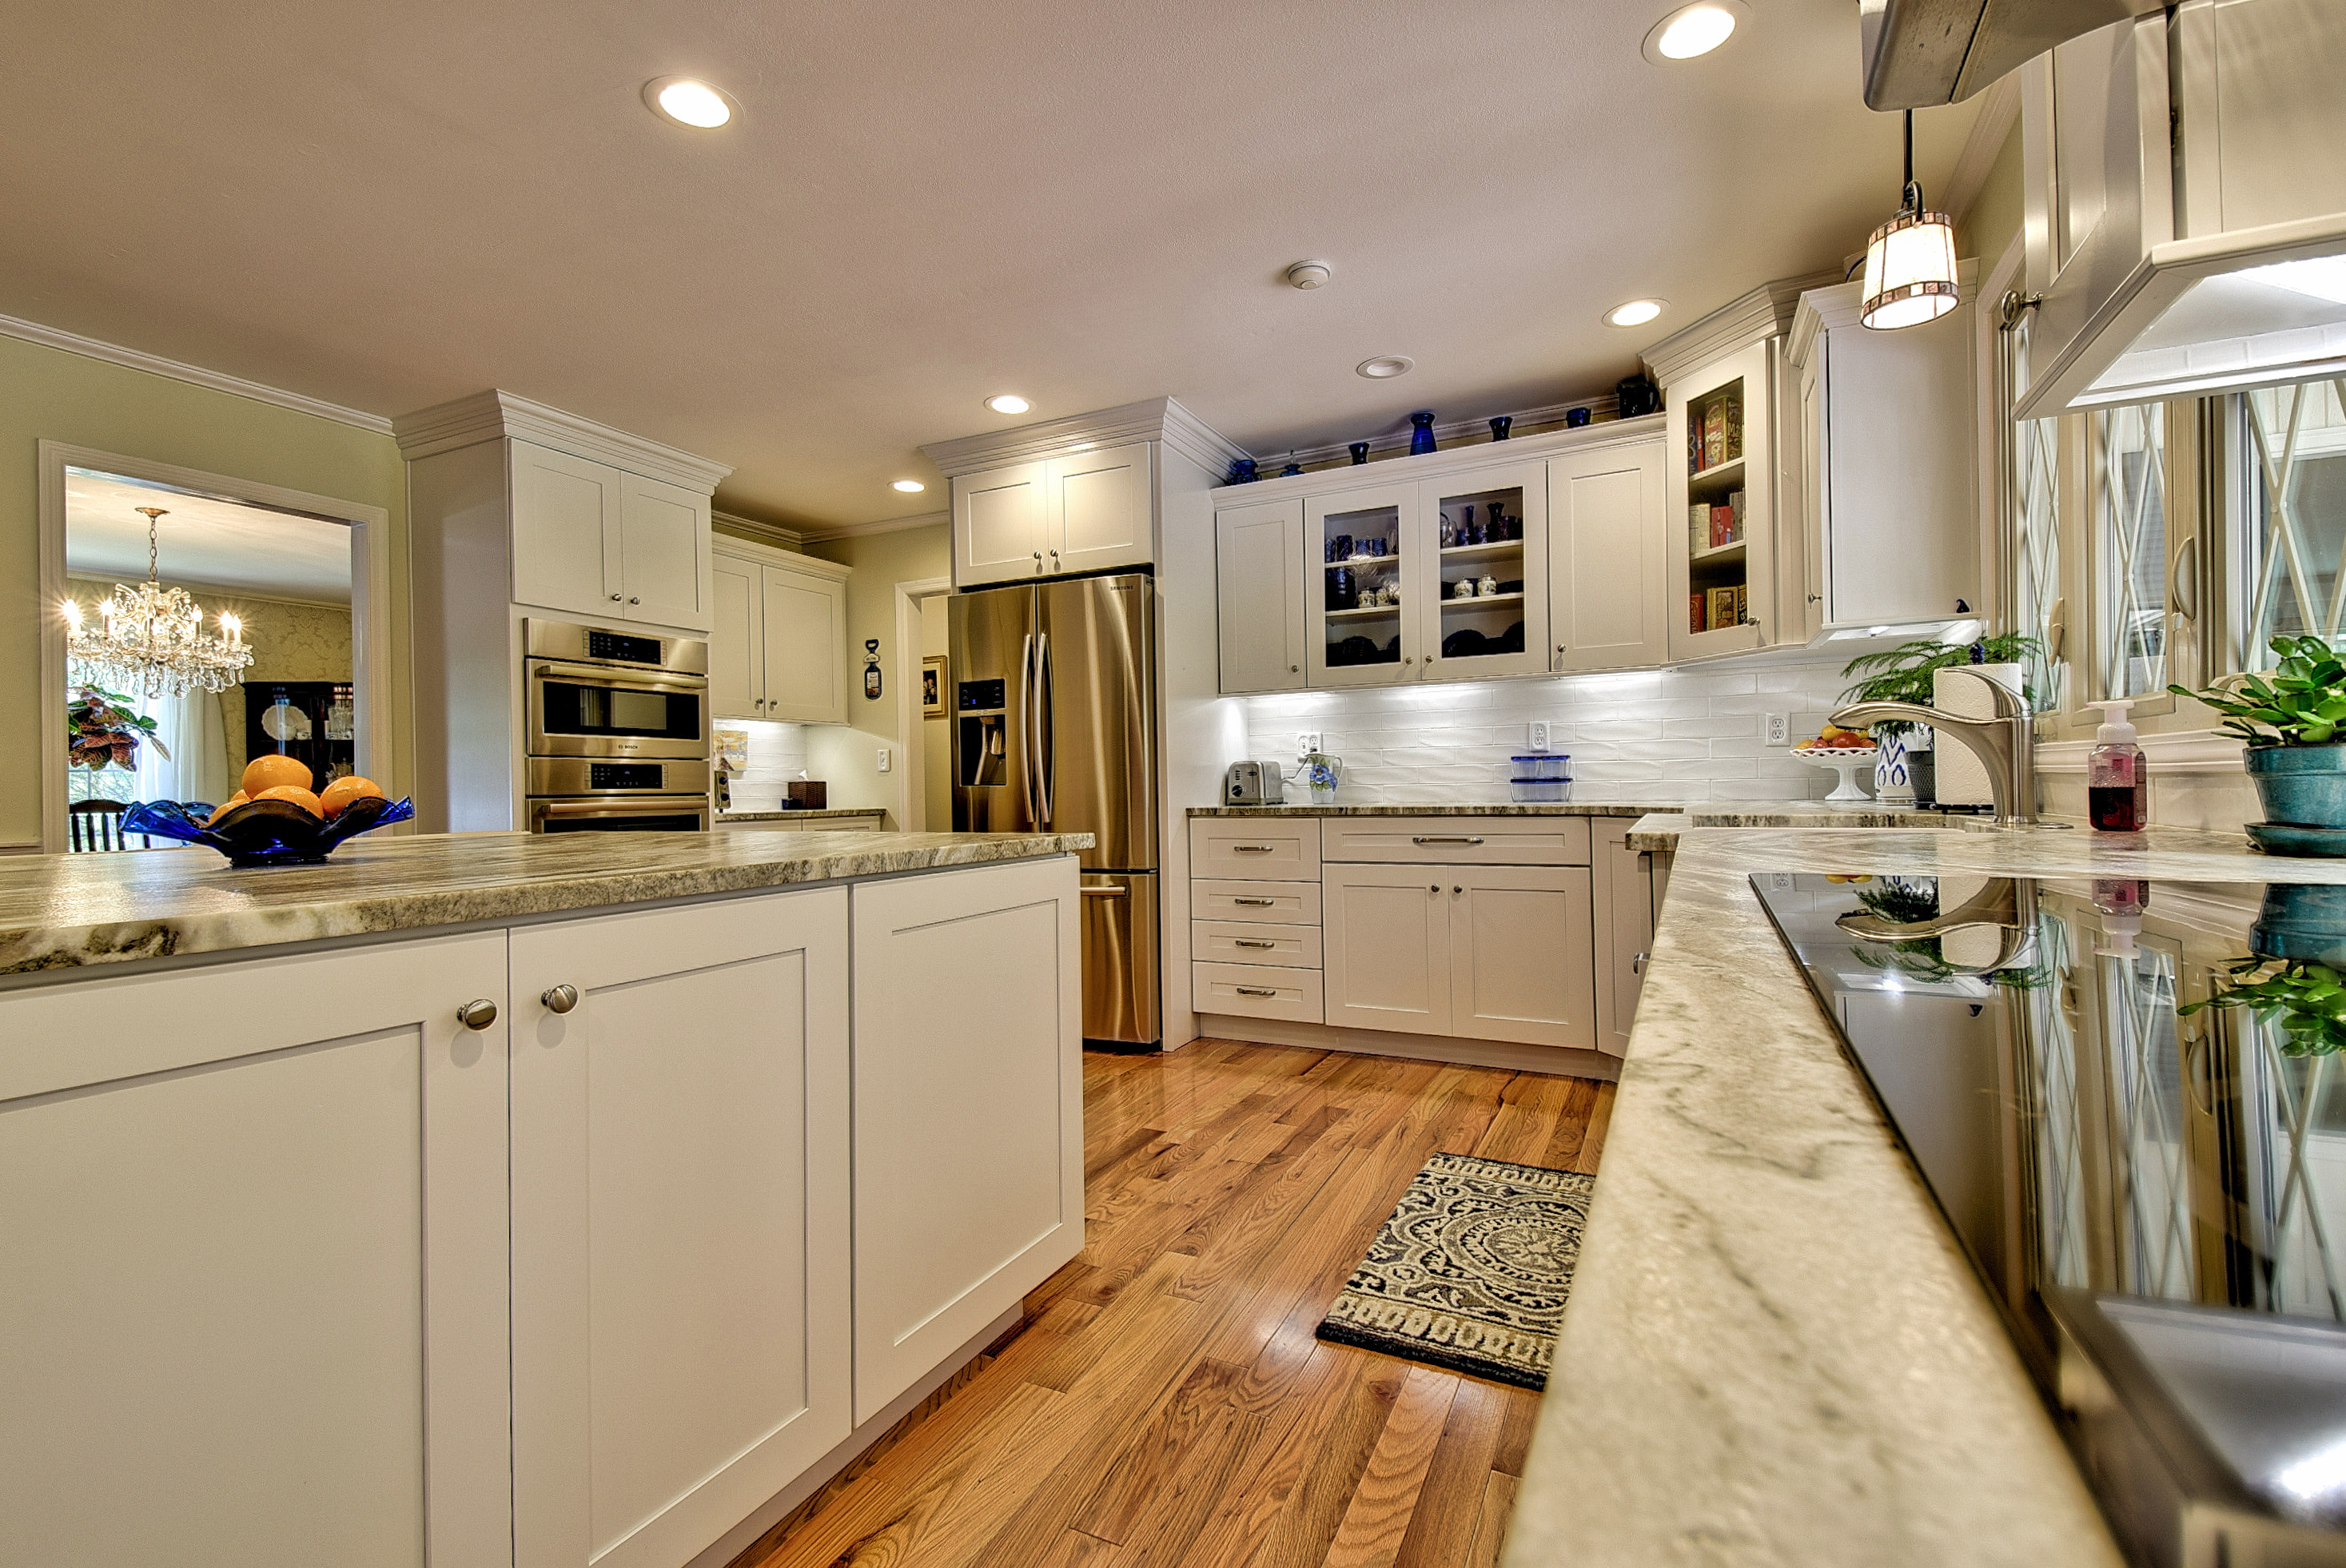 View Full Gallery. Kitchen Remodel Design & Cabinetry in Johnson City TN